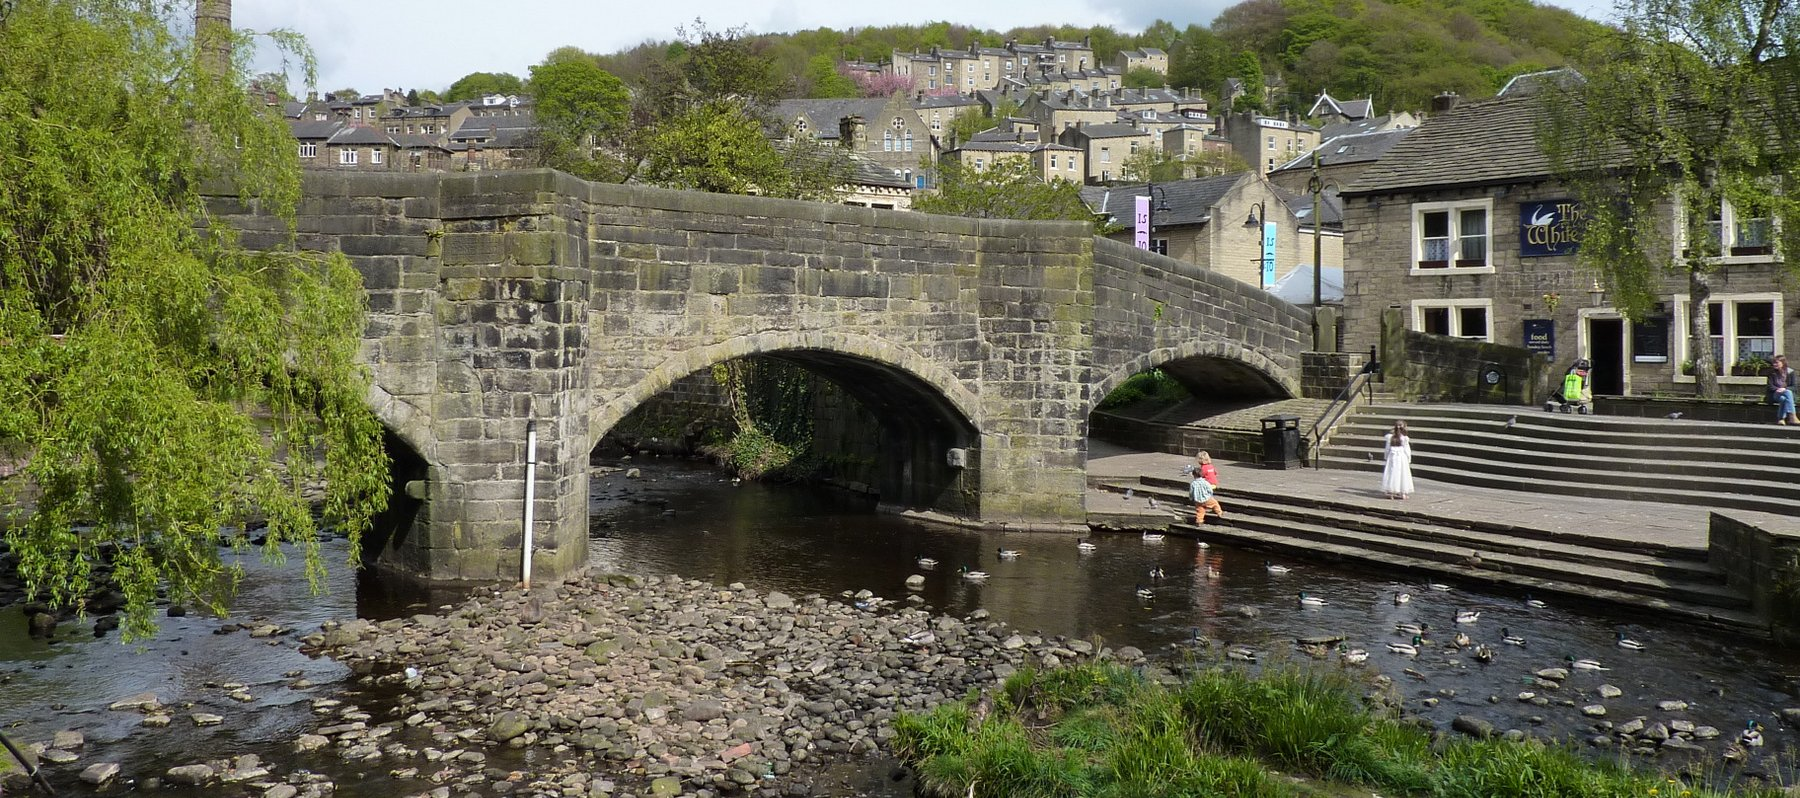 The bridge in Hebden Bridge